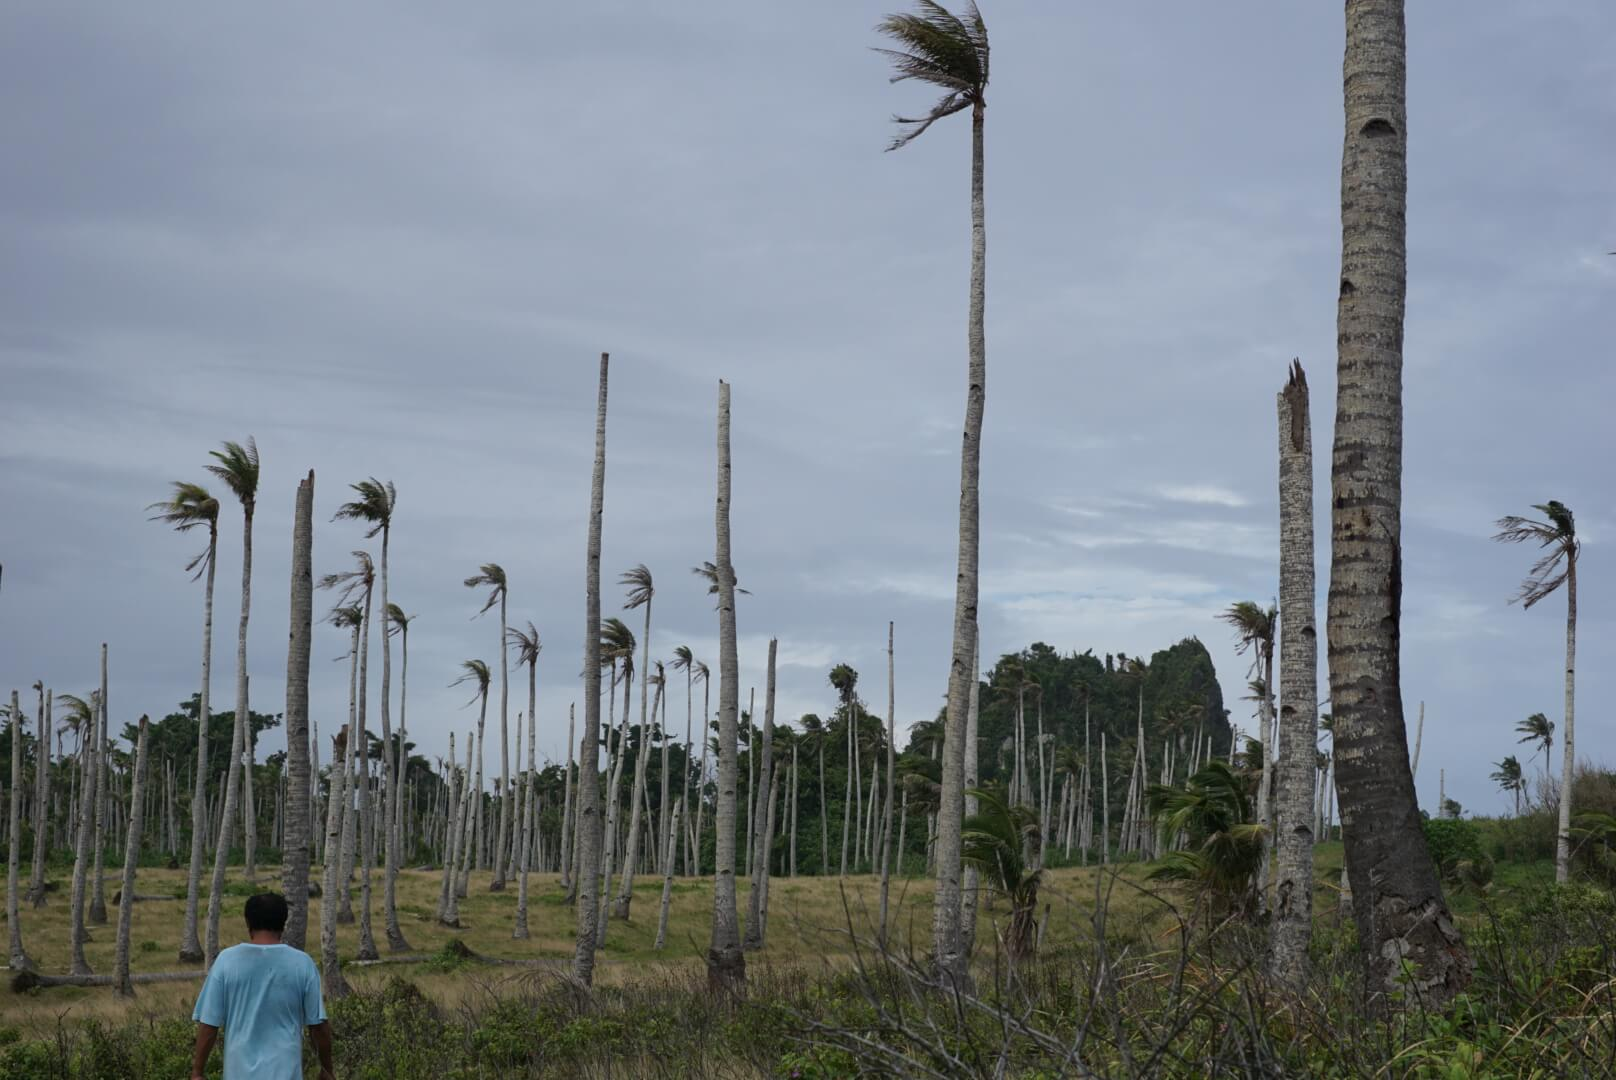 Coconut farms of Tacloban destroyed after typhoon hagupit